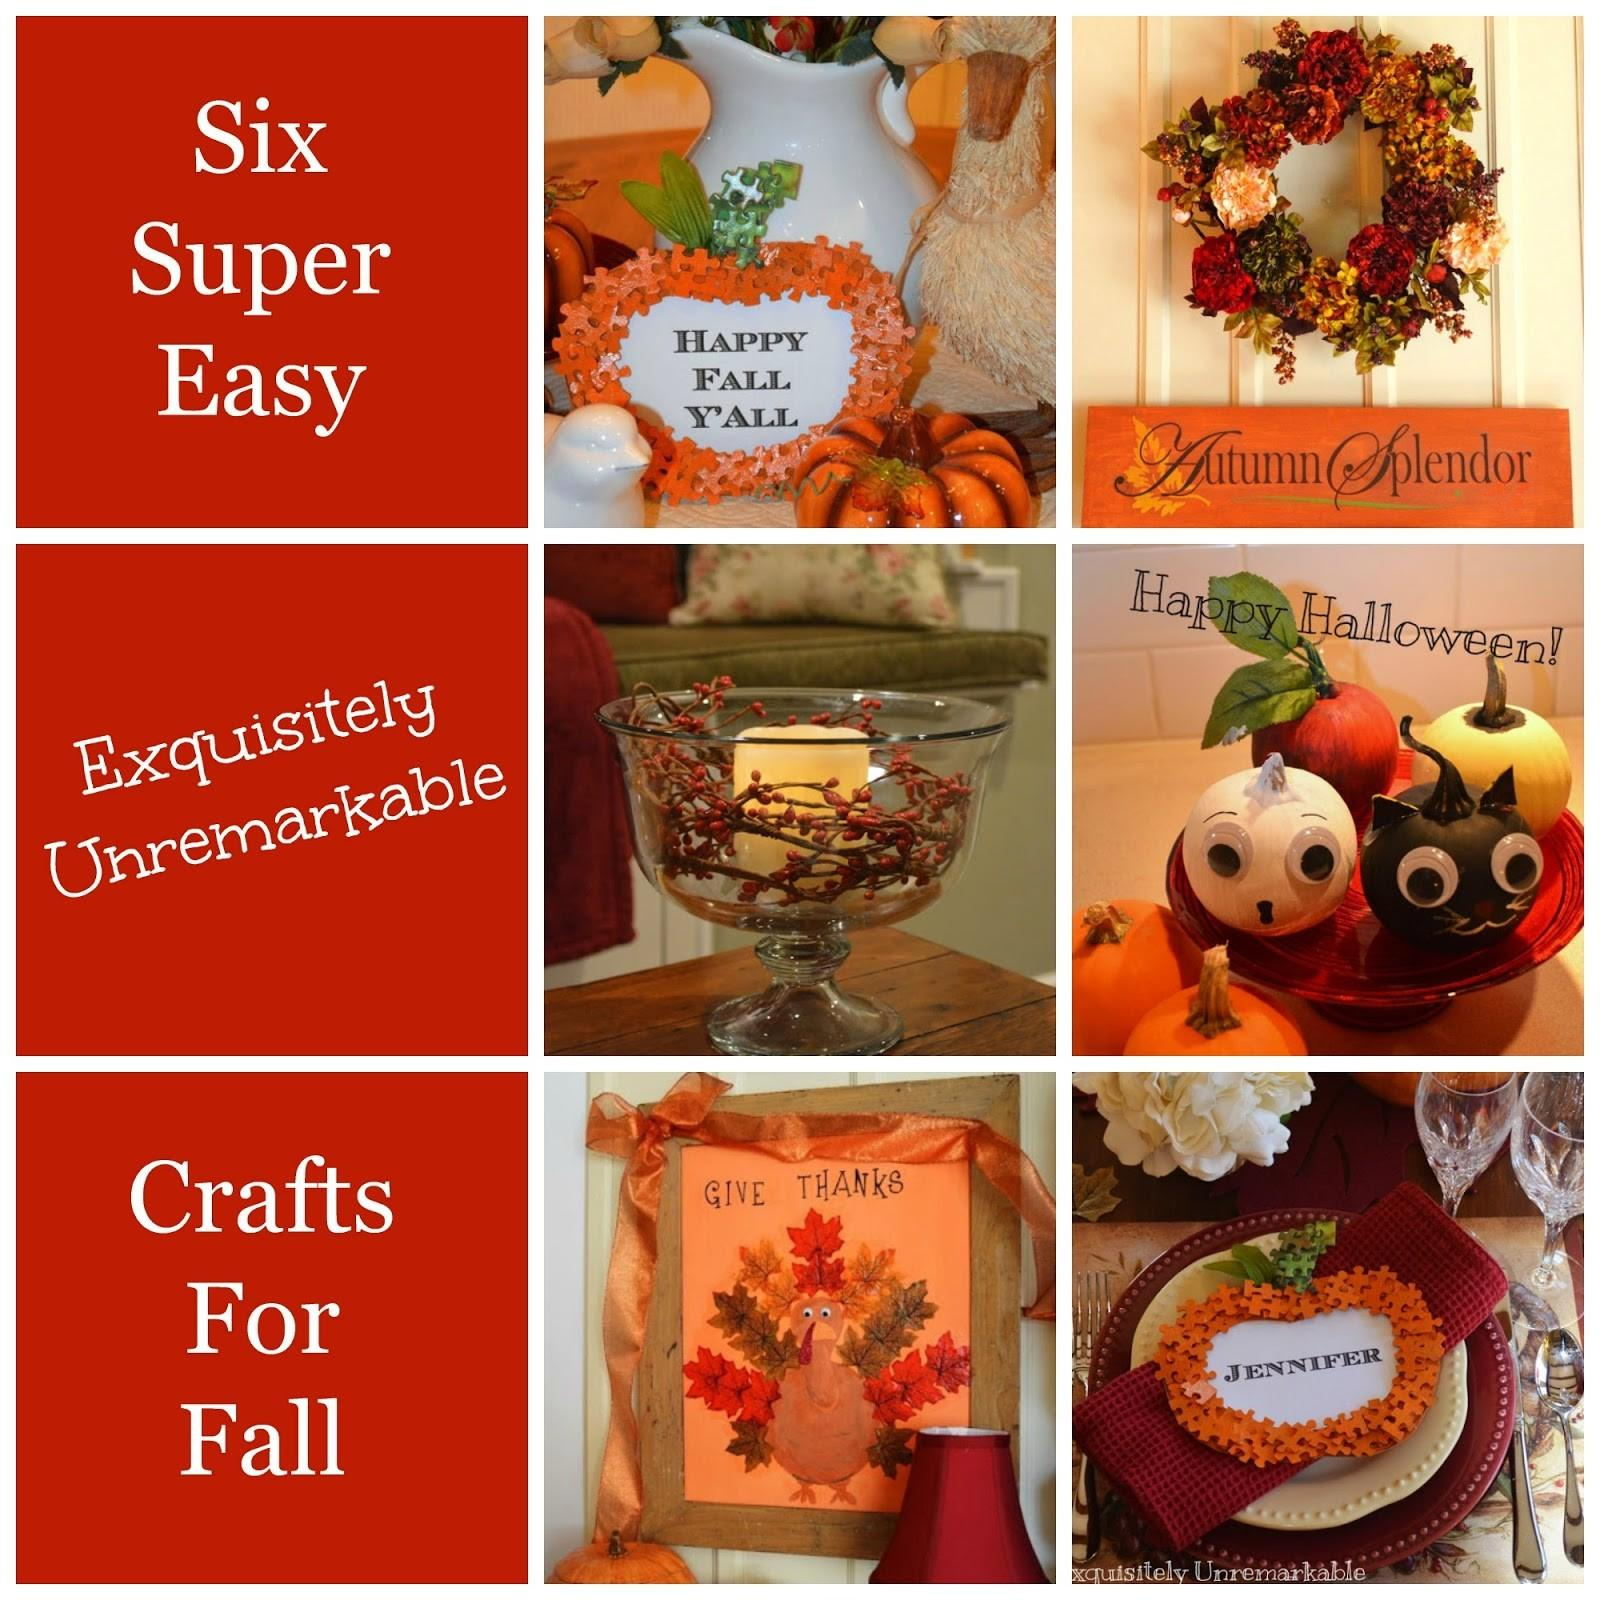 Six Super Easy Crafts Fall Exquisitely Unremarkable